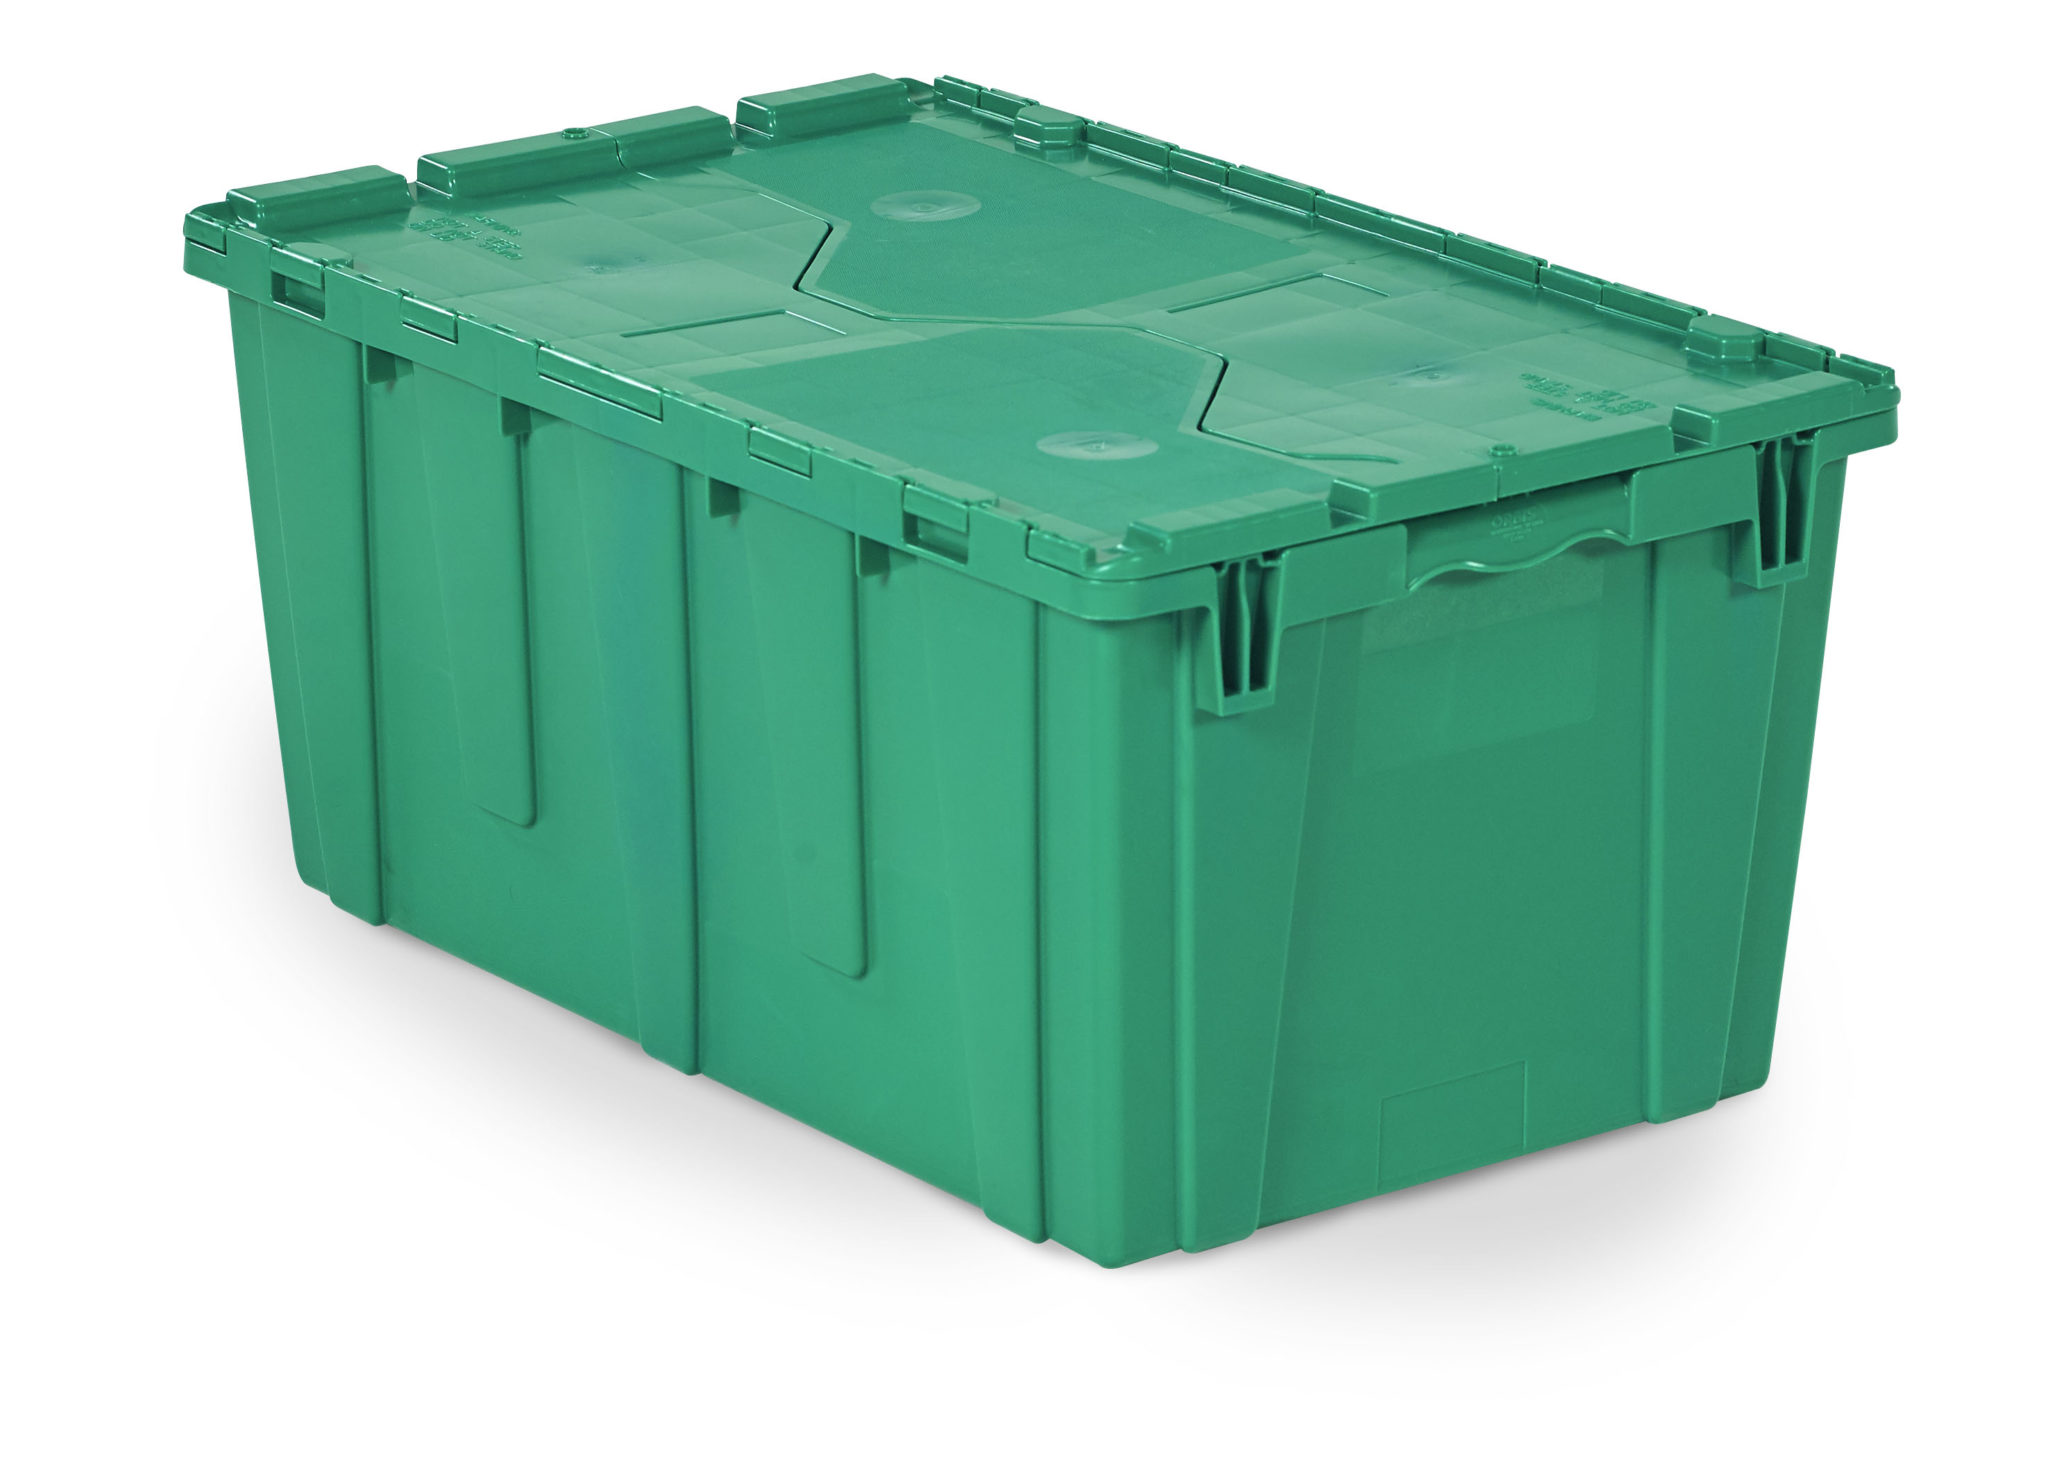 27 x 17 x 13 – Handheld Attached Lid Container